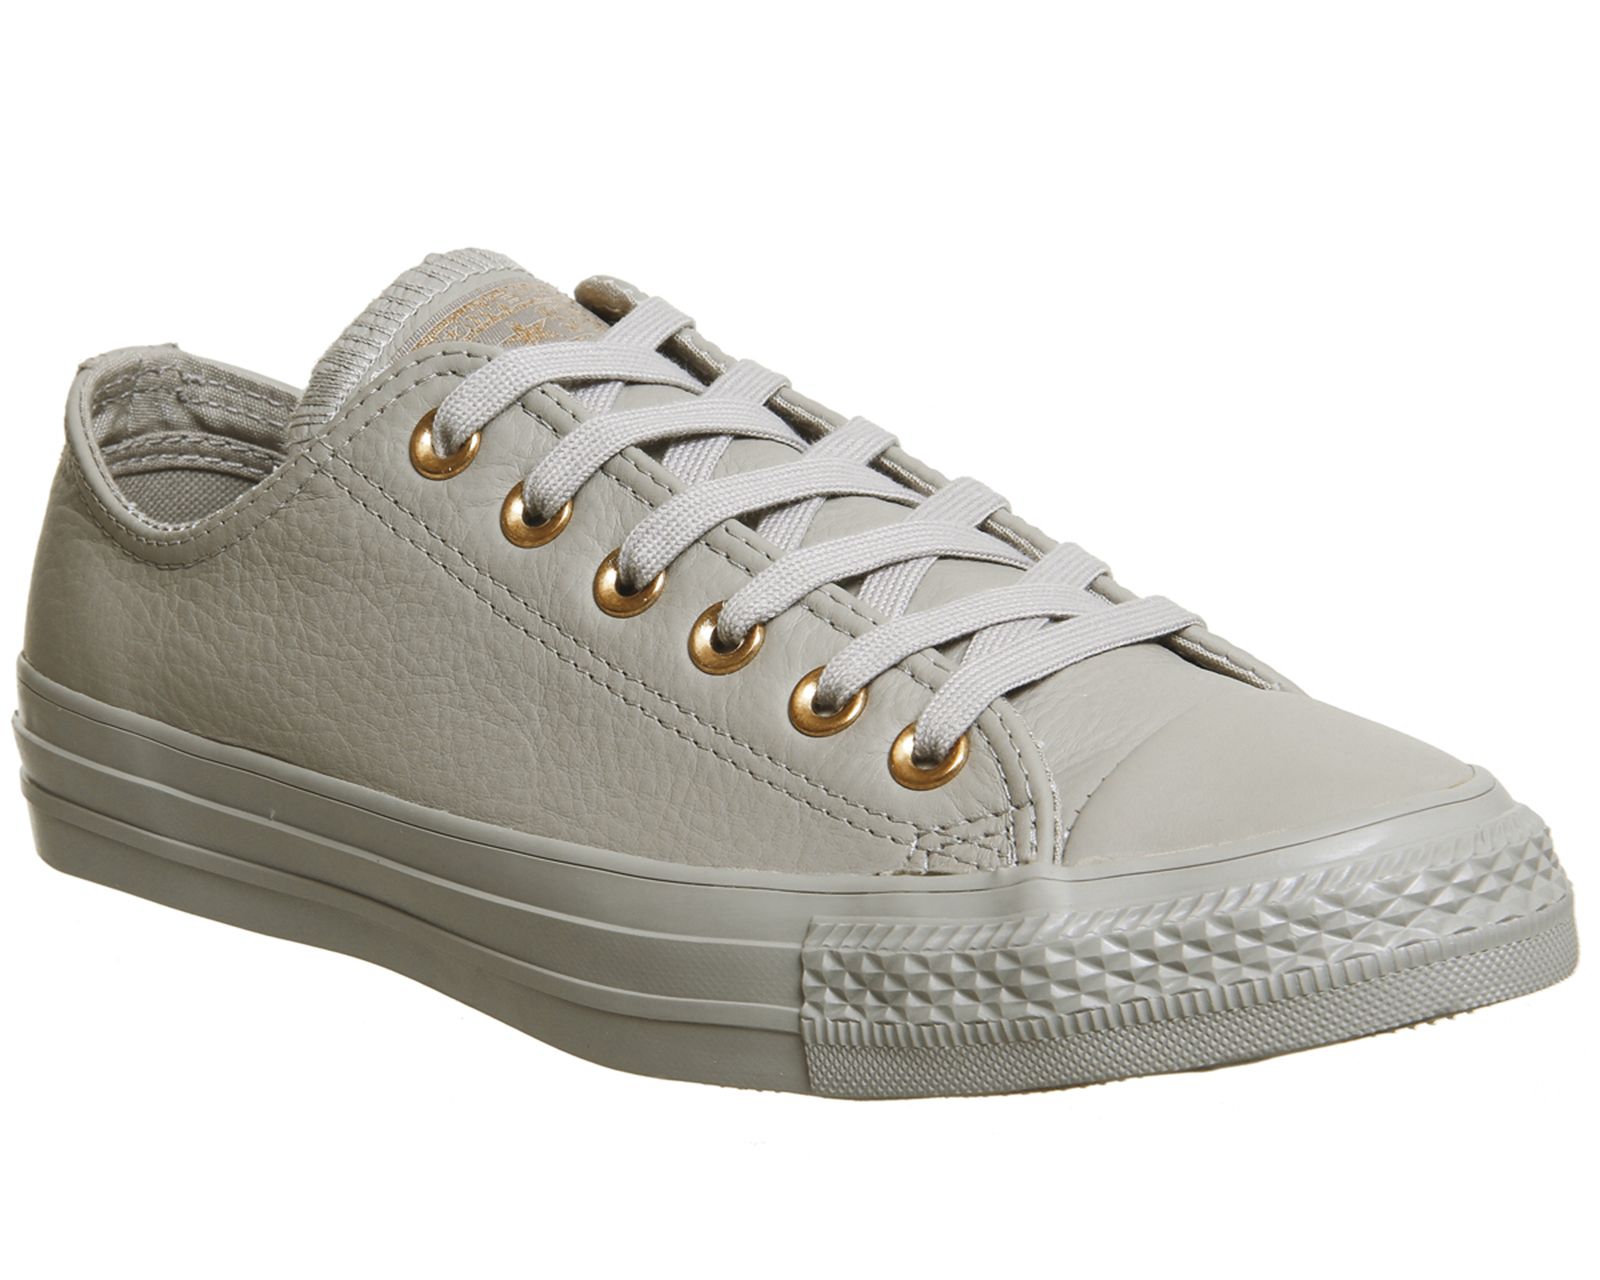 fff85b3cc1a027 Sentinel Womens Converse All star Low Leather Trainers MALTED ROSE GOLD  EXCLUSIVE Trainer